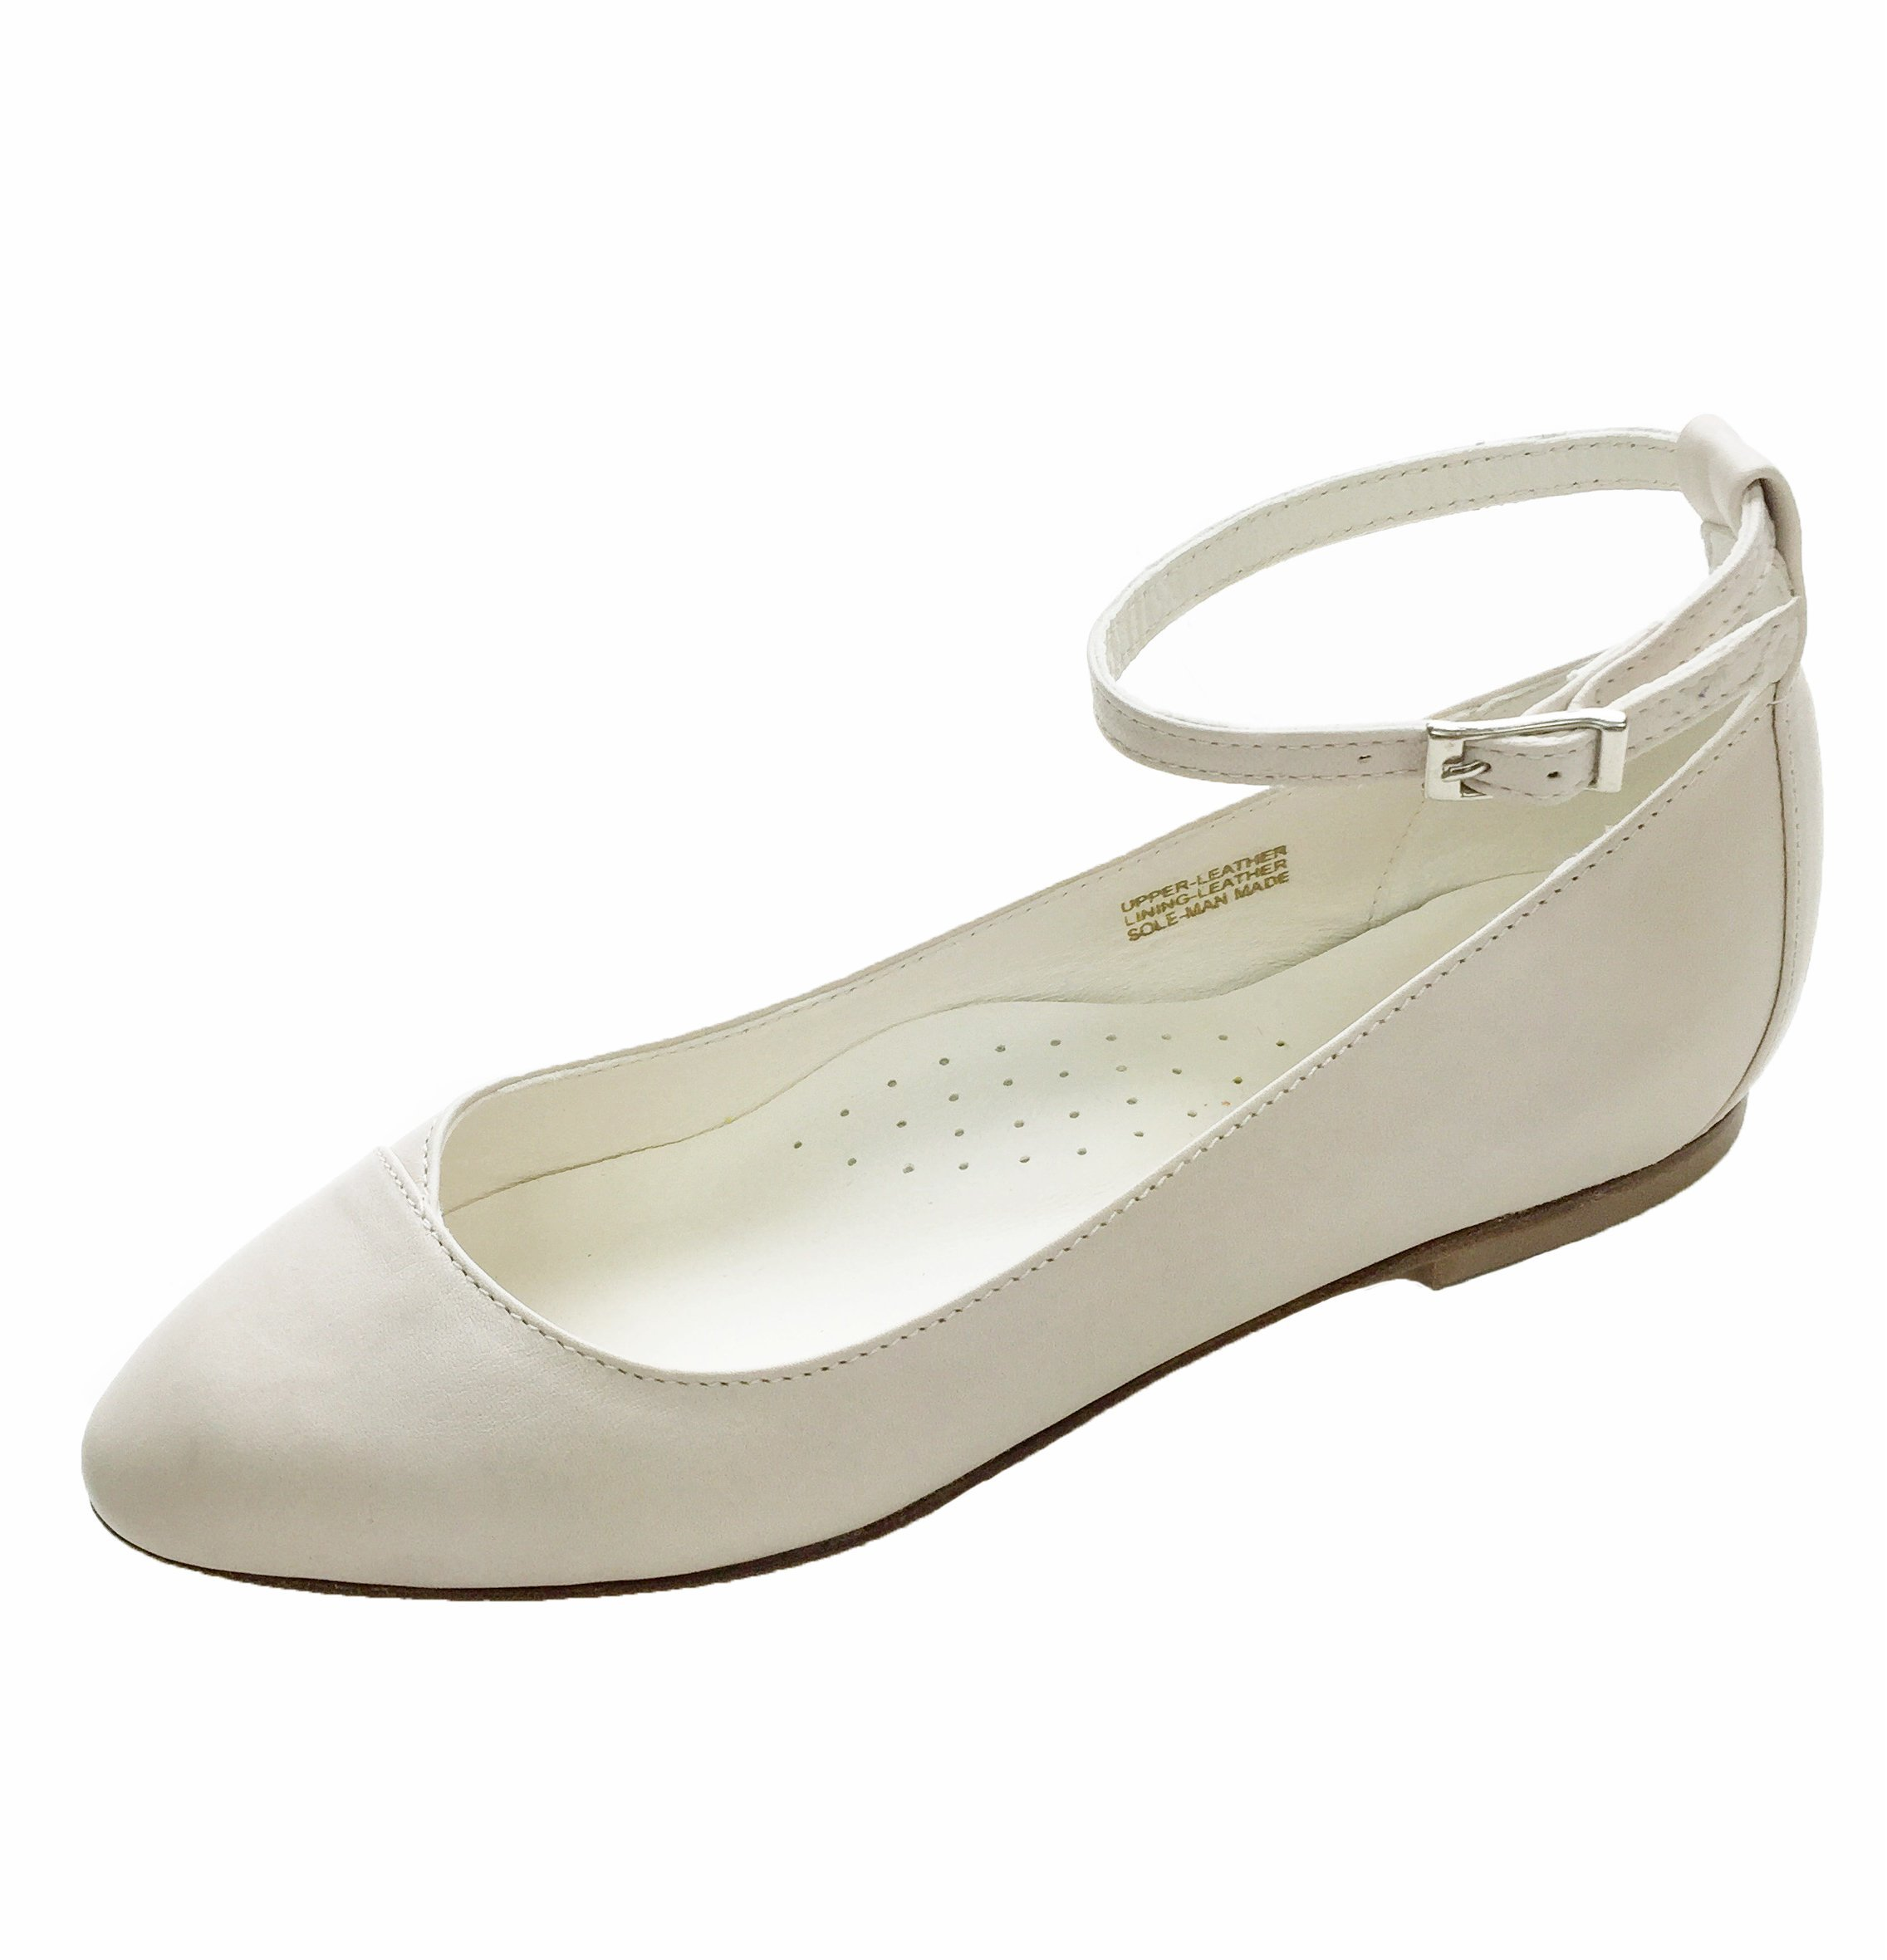 Chebran Narrow Width | Made In Portugal | Ankle Strap | Off-White Leather Flats | Size 9